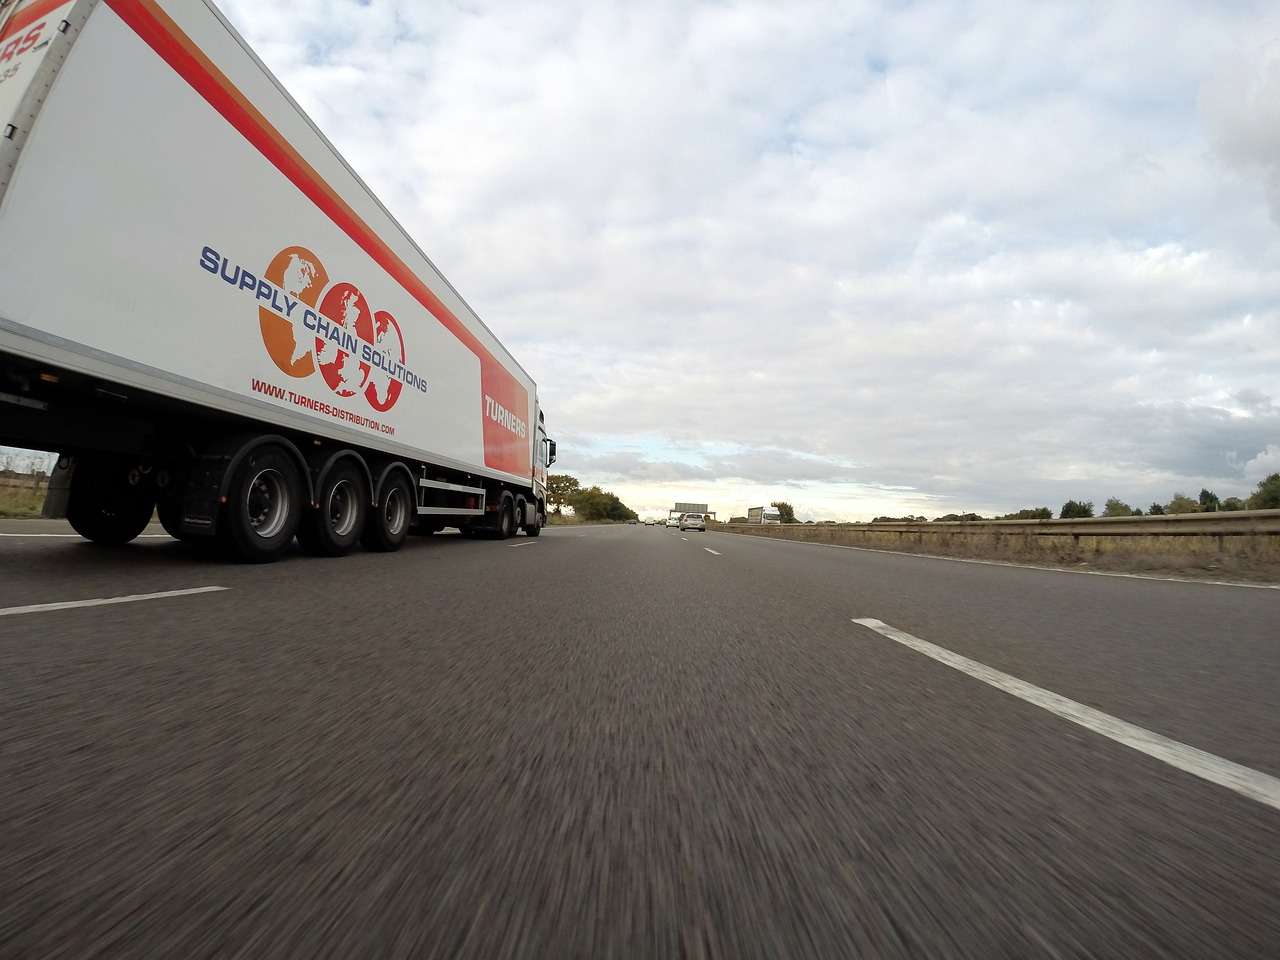 A truck on the road - here's how to load a moving truck